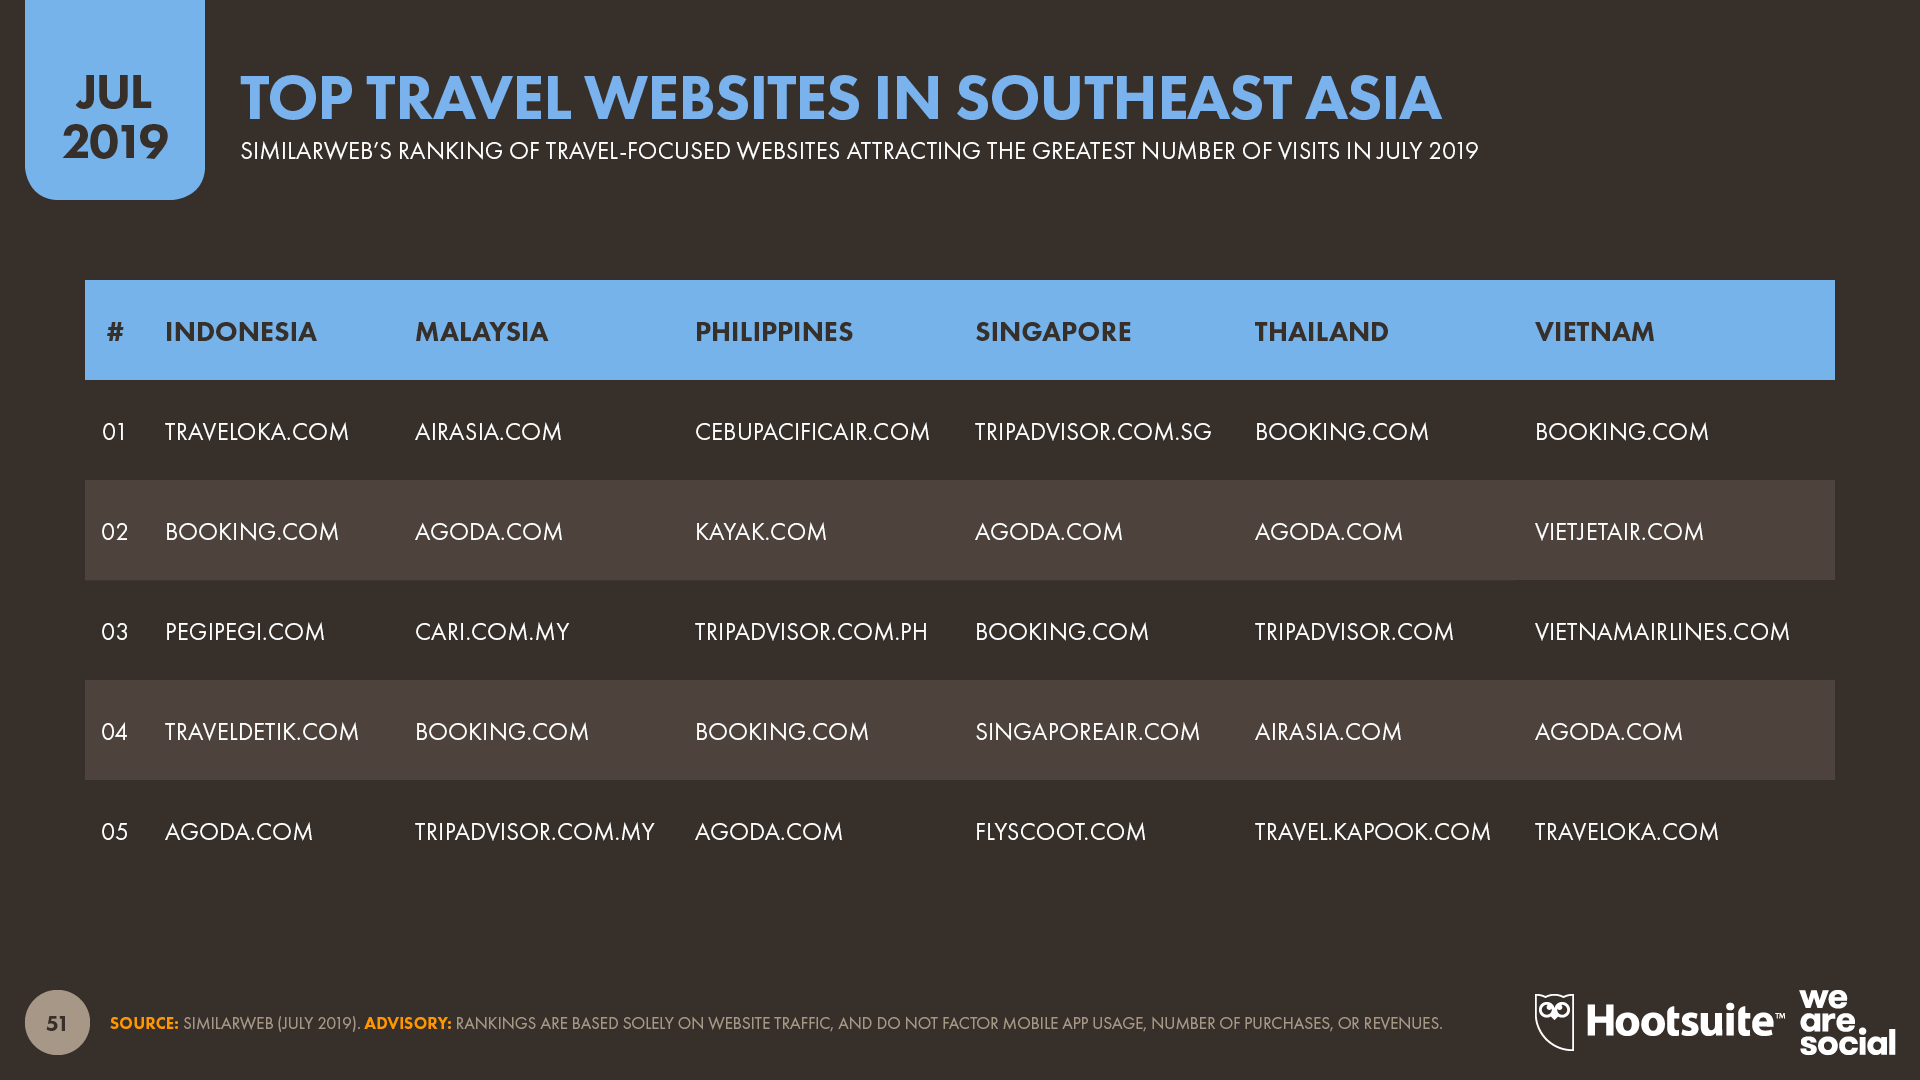 Top Travel Websites in Southeast Asia July 2019 DataReportal